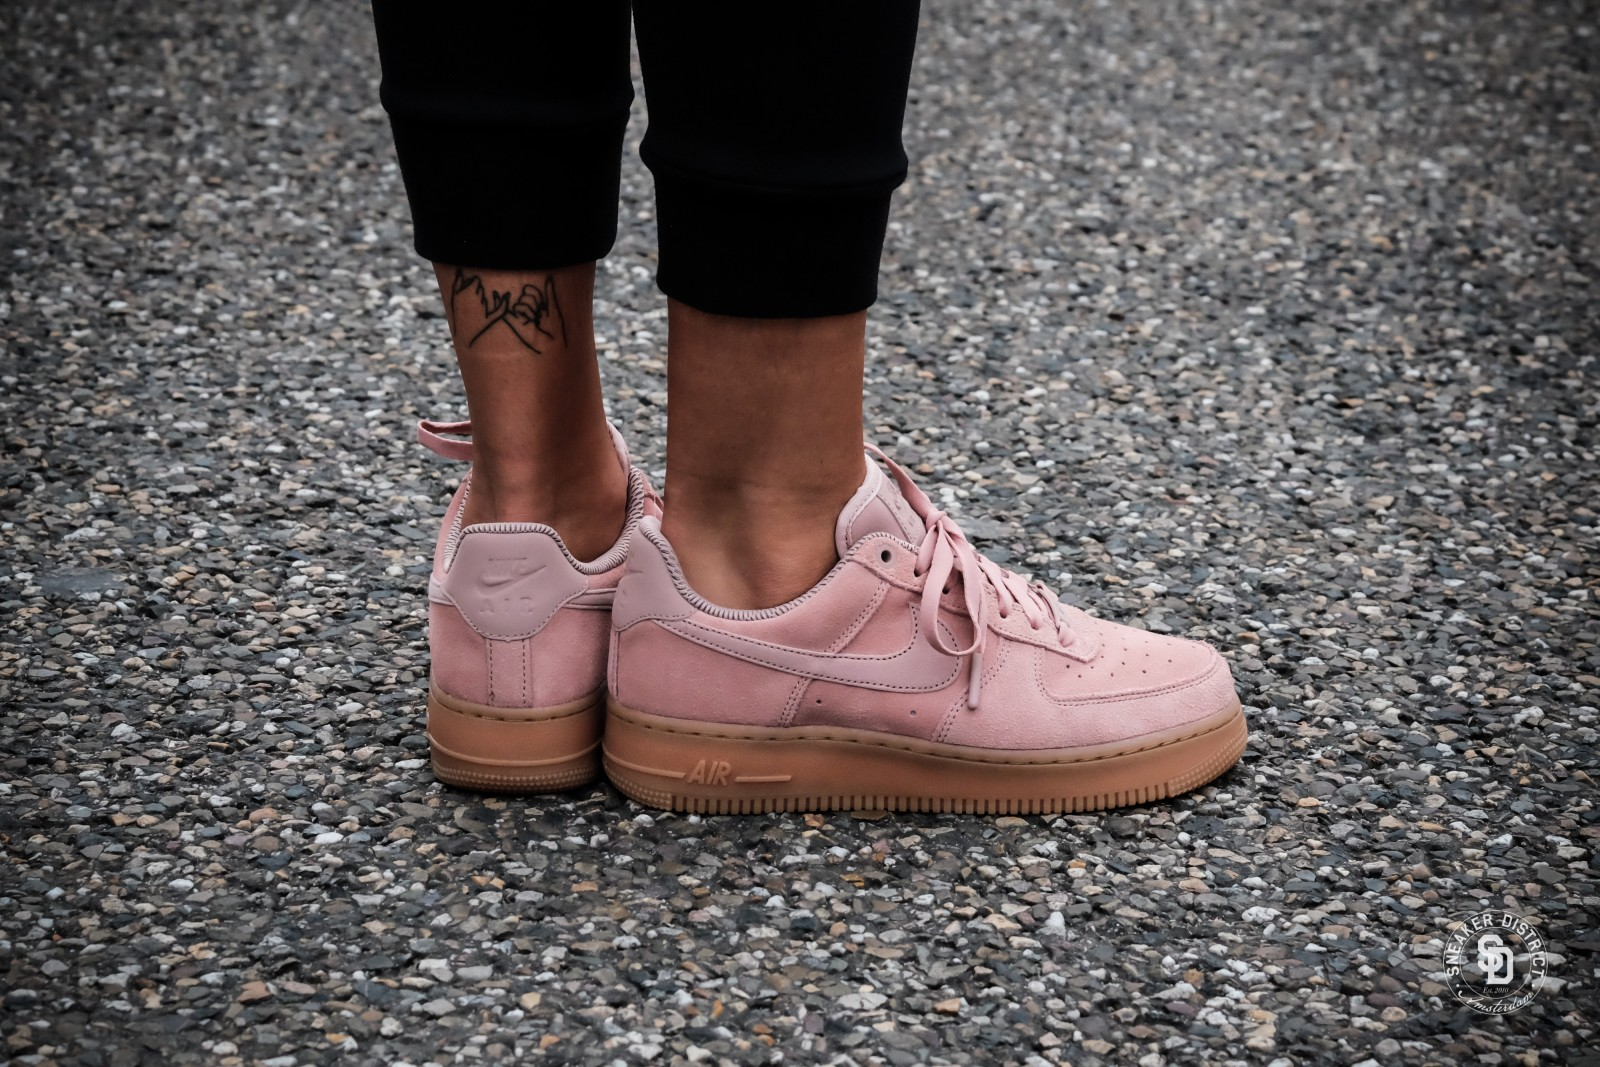 SE Particle Pink/Gum sneakers